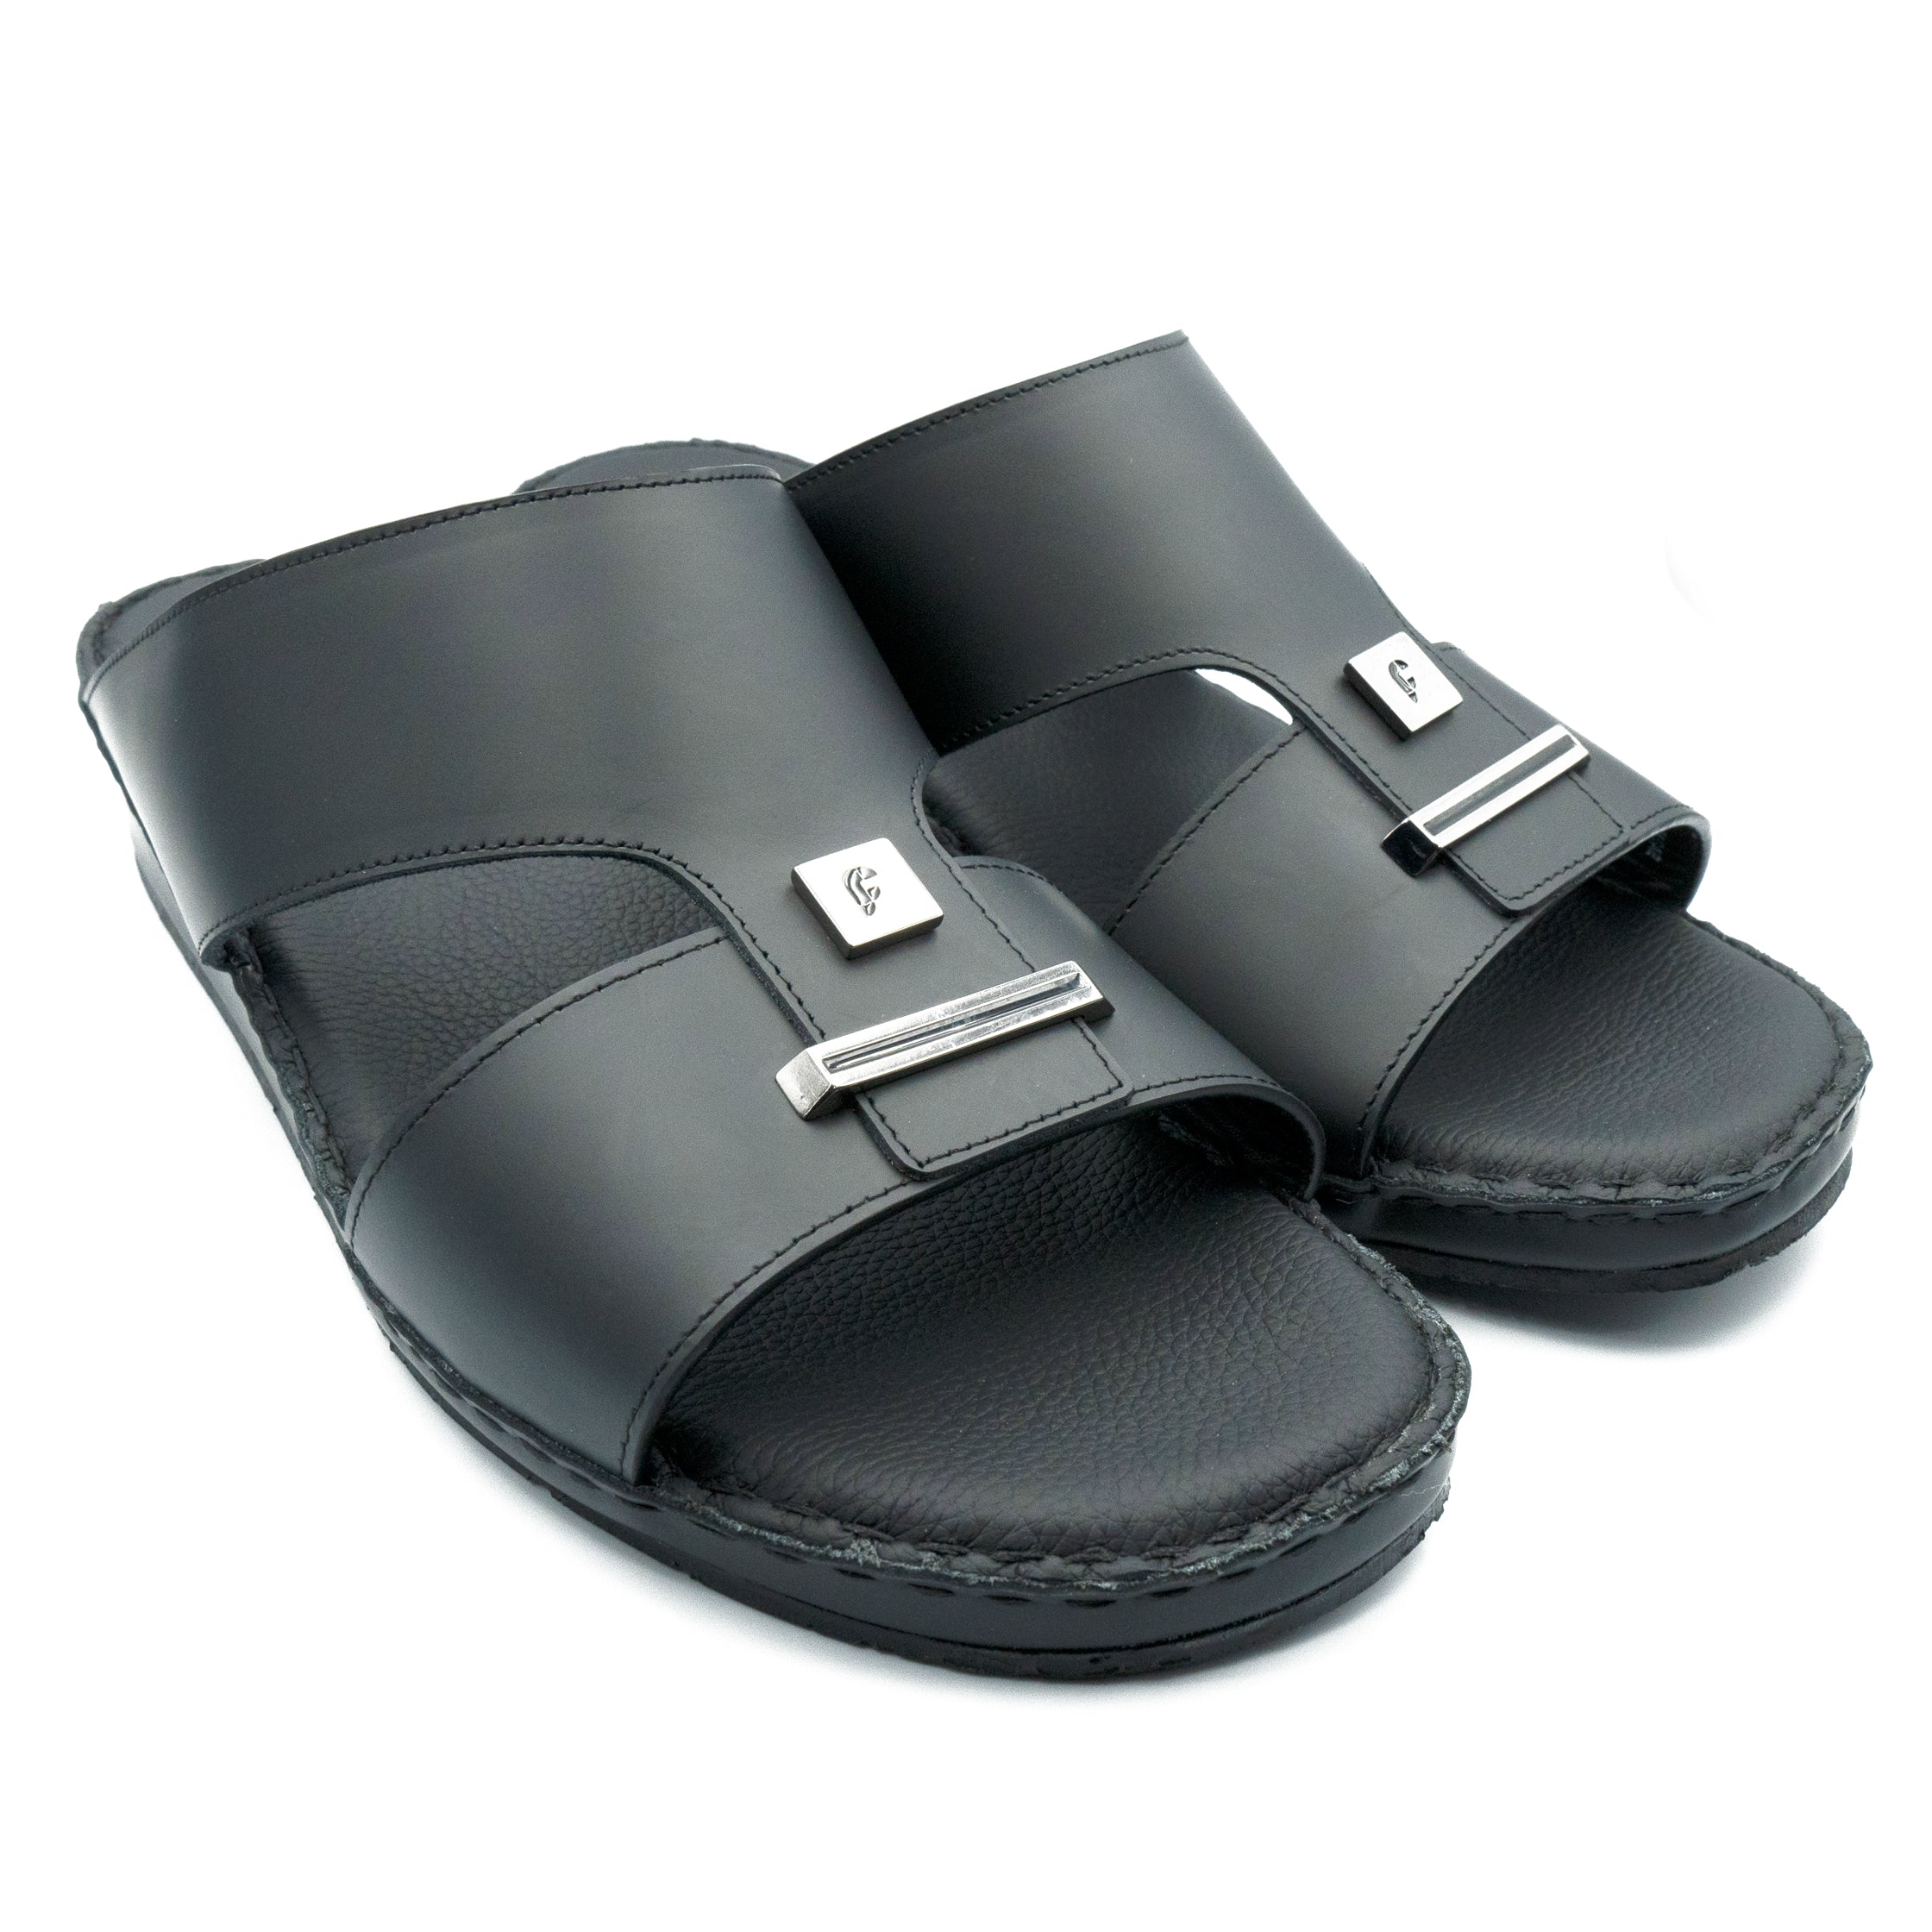 Black, Oxford, Soft, Matte, Flat, Sandals, Ramadan Collection, Arabic, Sandals, Accessories